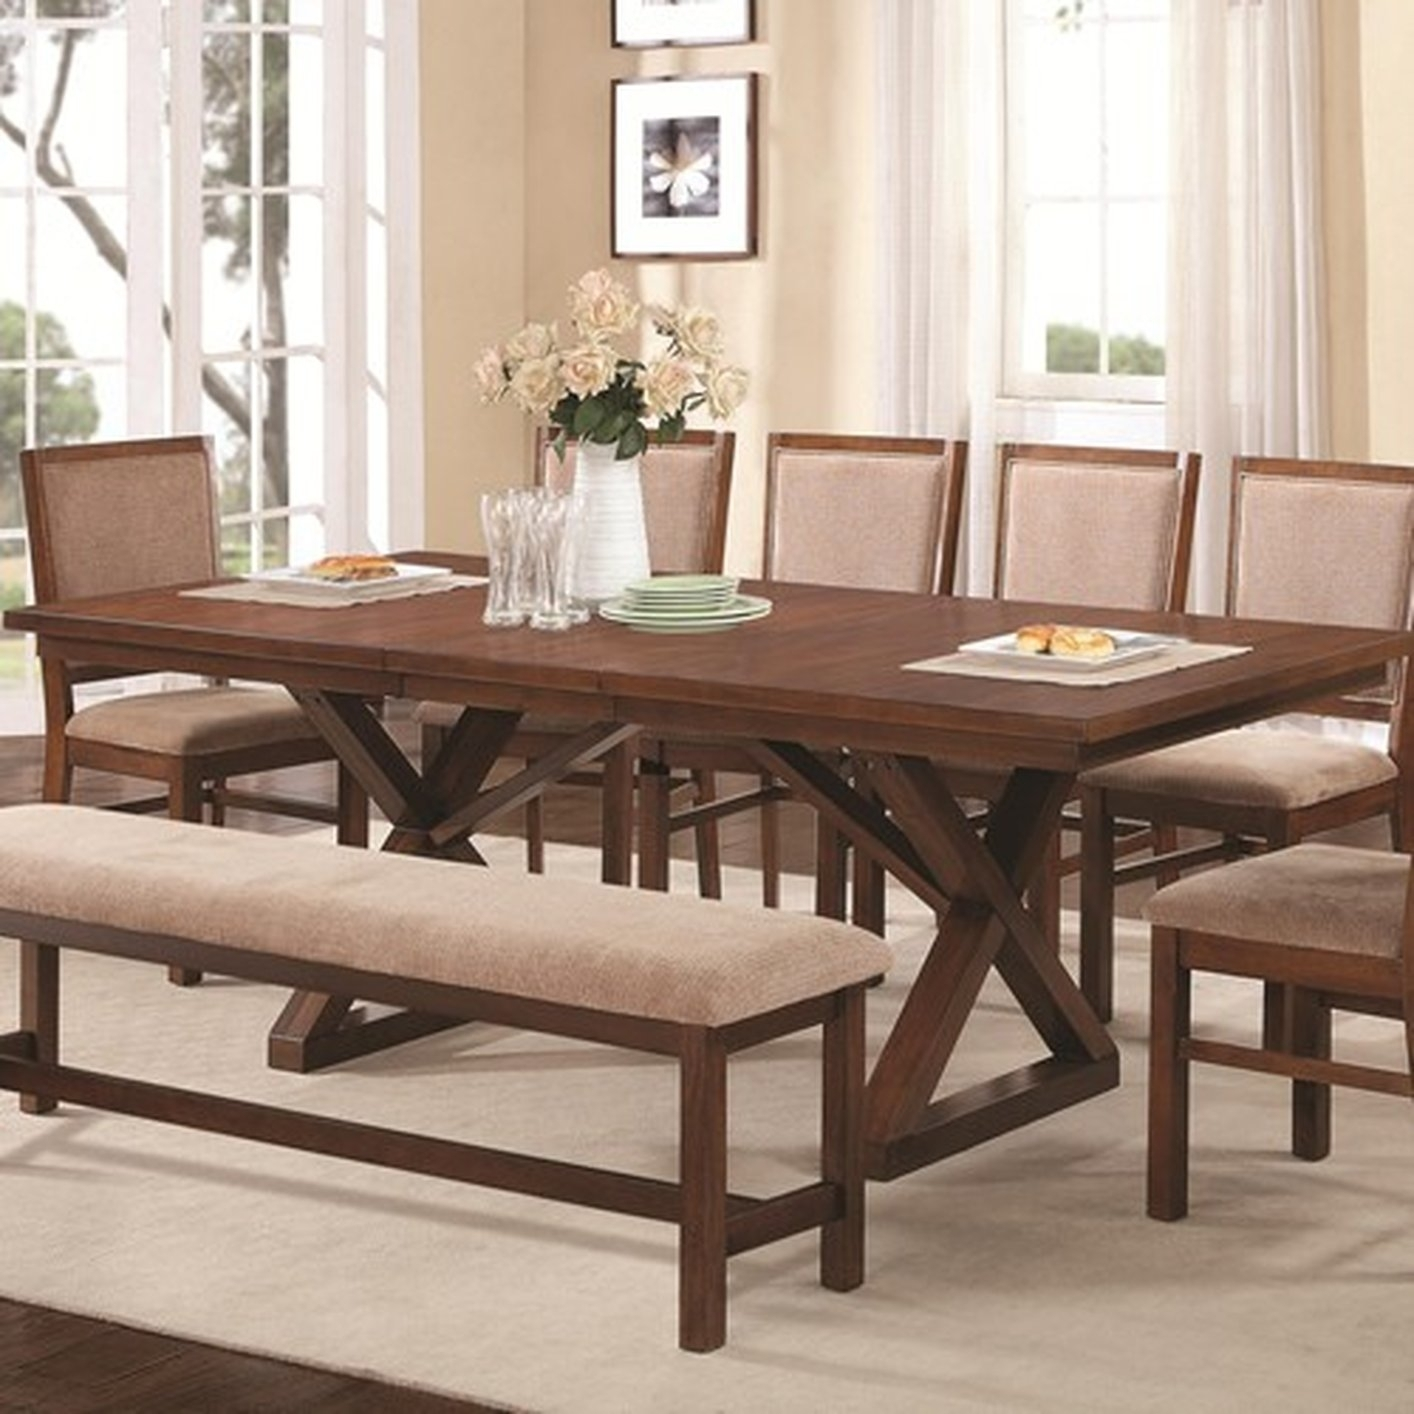 10+ Choices Of Sofa Chairs With Dining Table